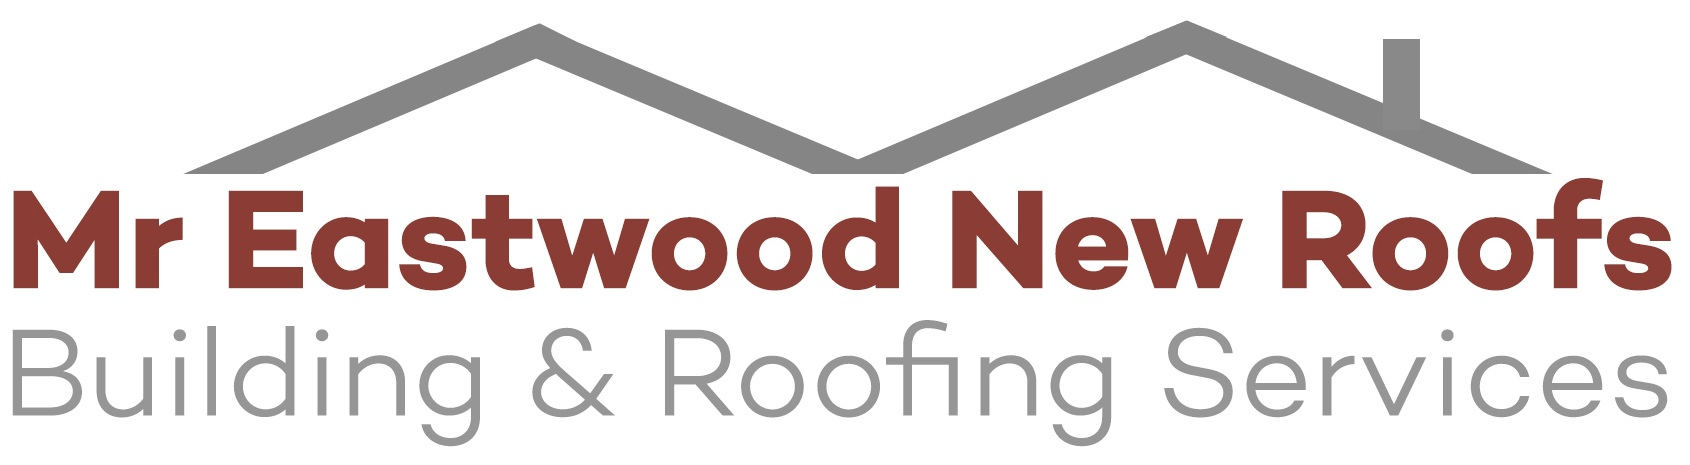 Mr Eastwood New Roofs